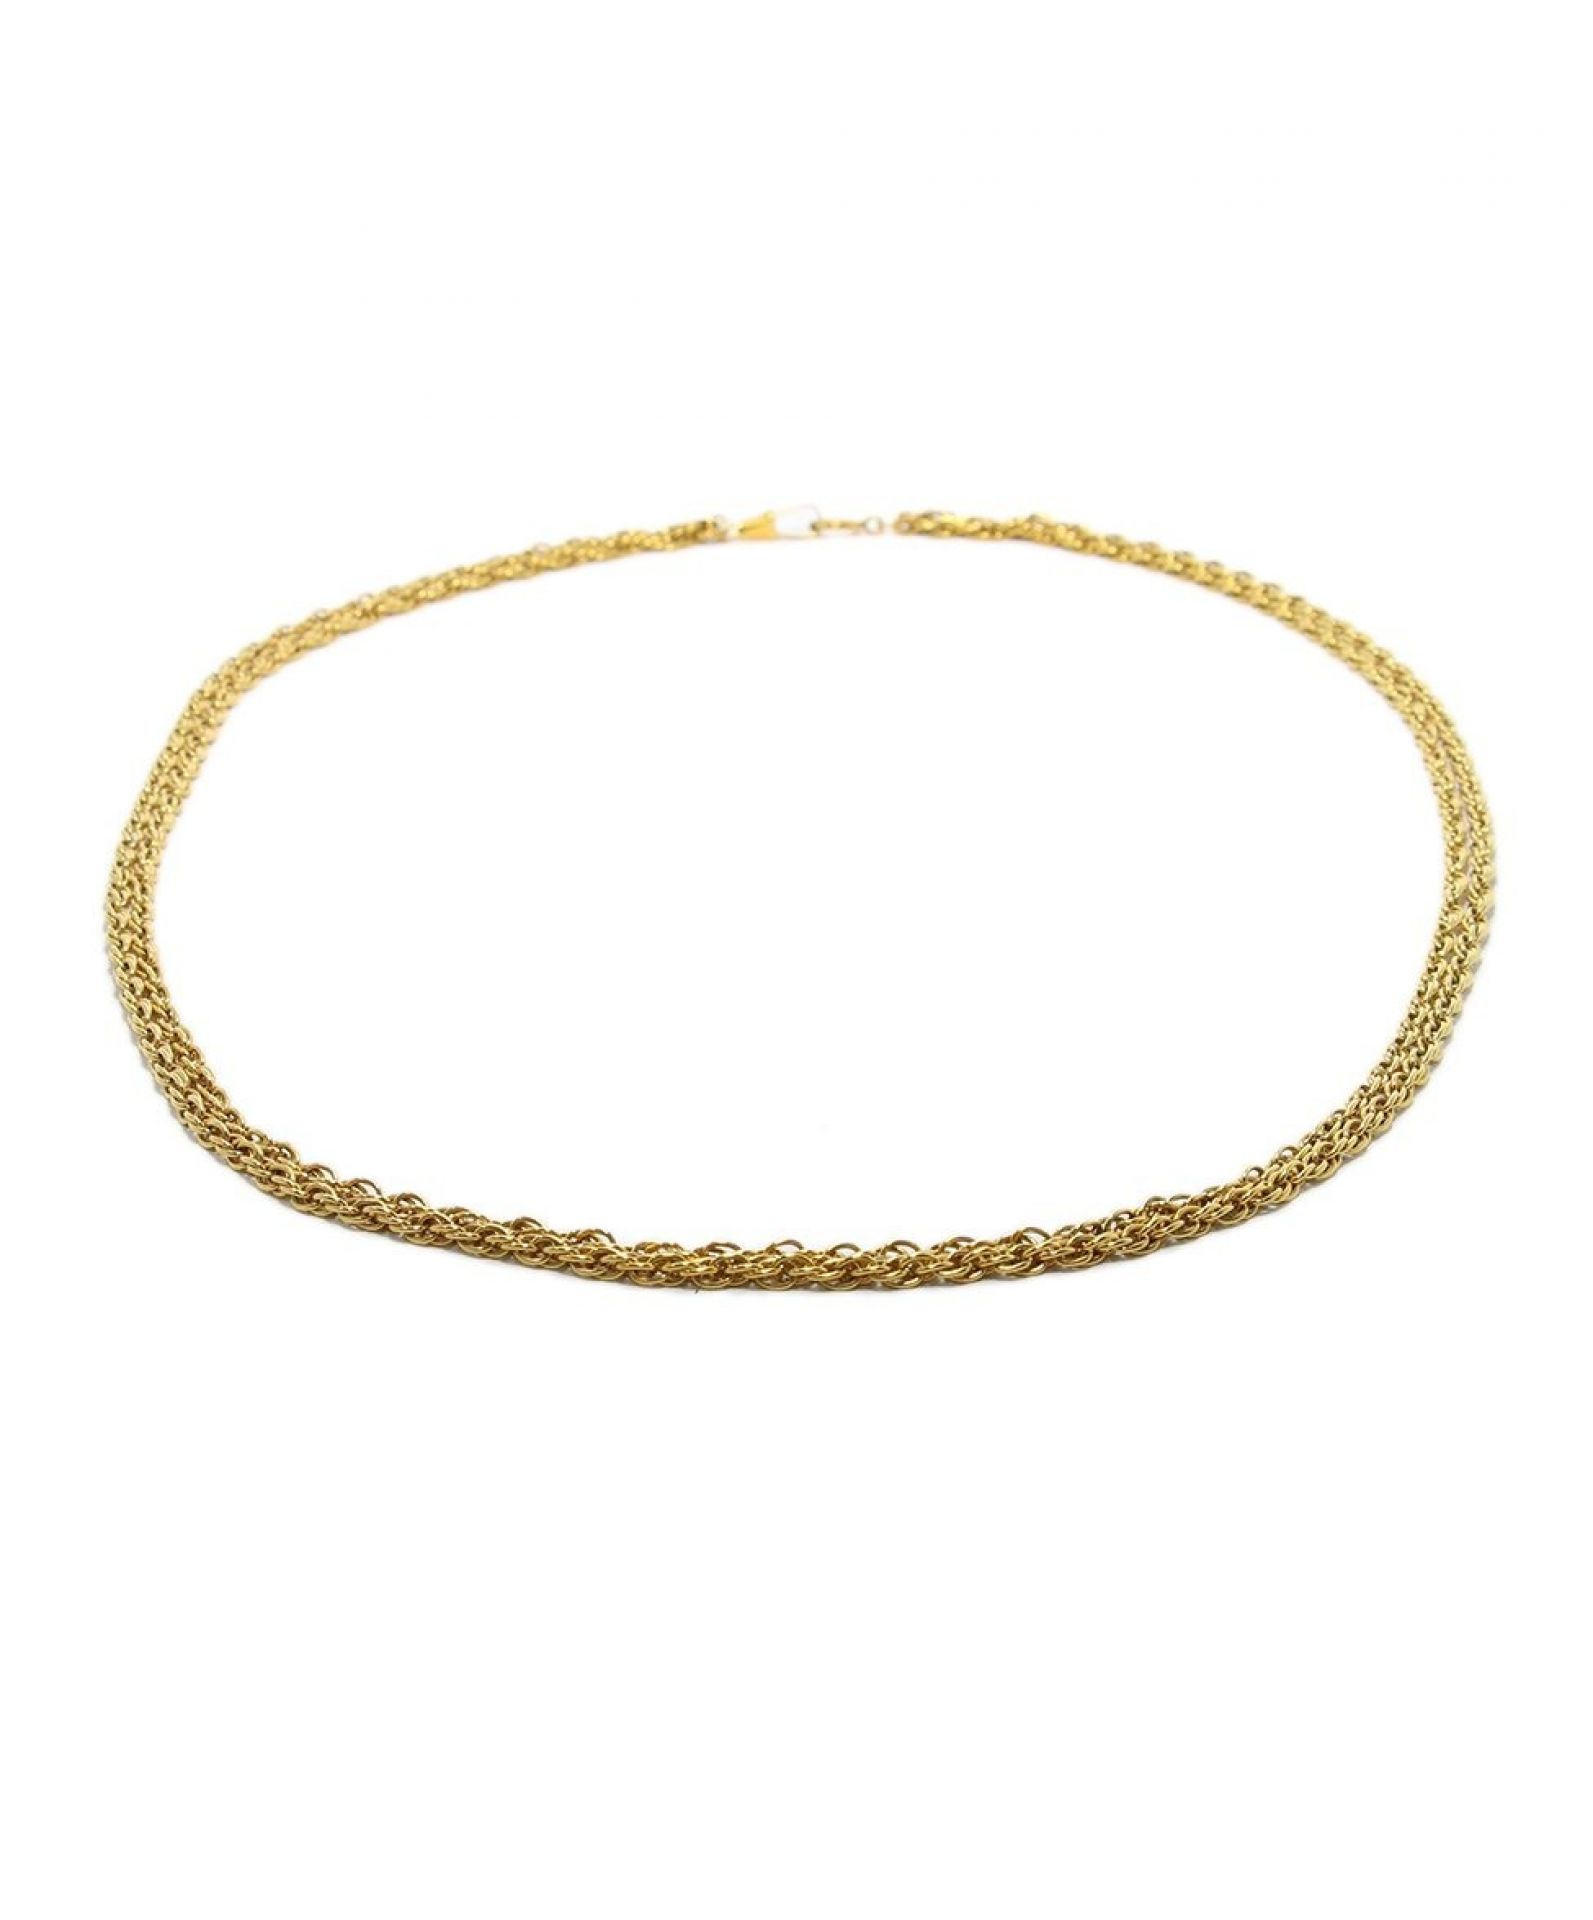 CHANEL METALLIC GOLD METAL CHAIN NECKLACE